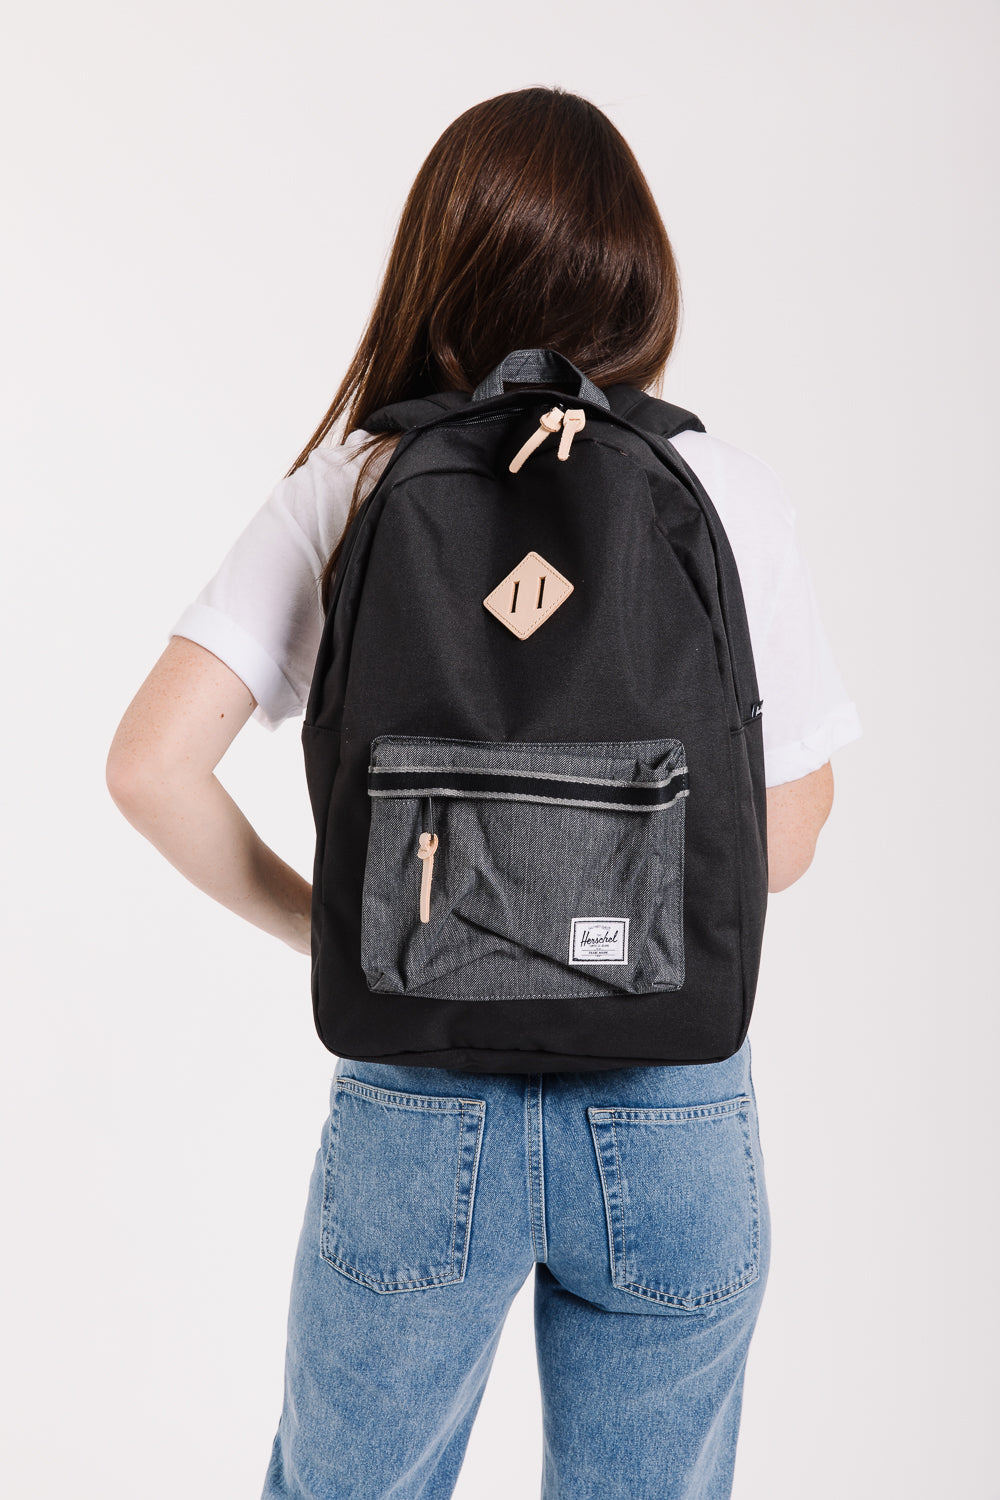 Herschel: Heritage Backpack in Black/Black Denim